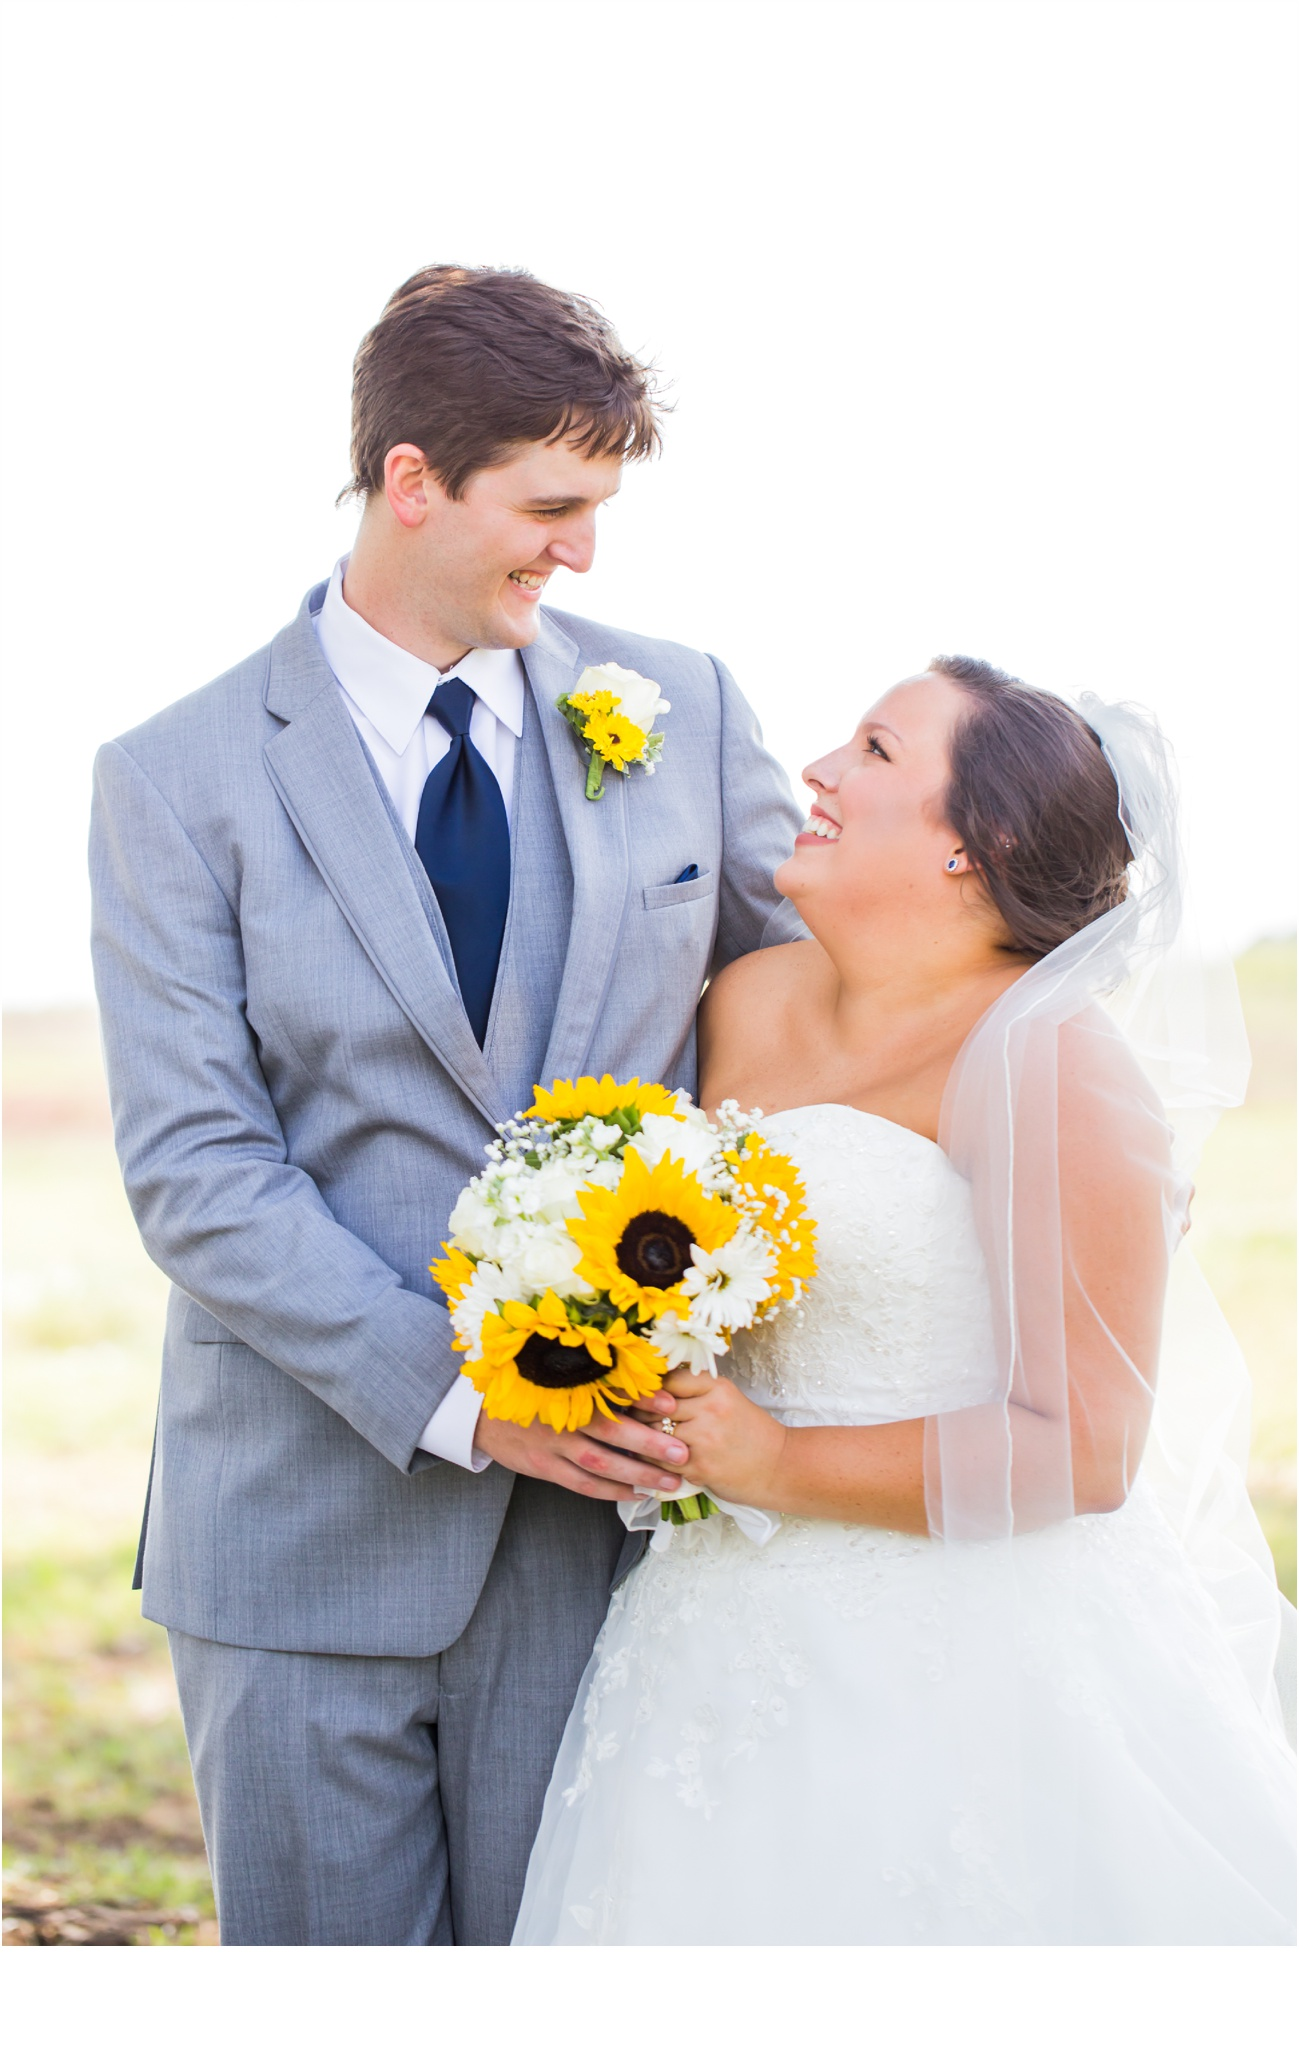 Rainey_Gregg_Photography_St._Simons_Island_Georgia_California_Wedding_Portrait_Photography_0310.jpg